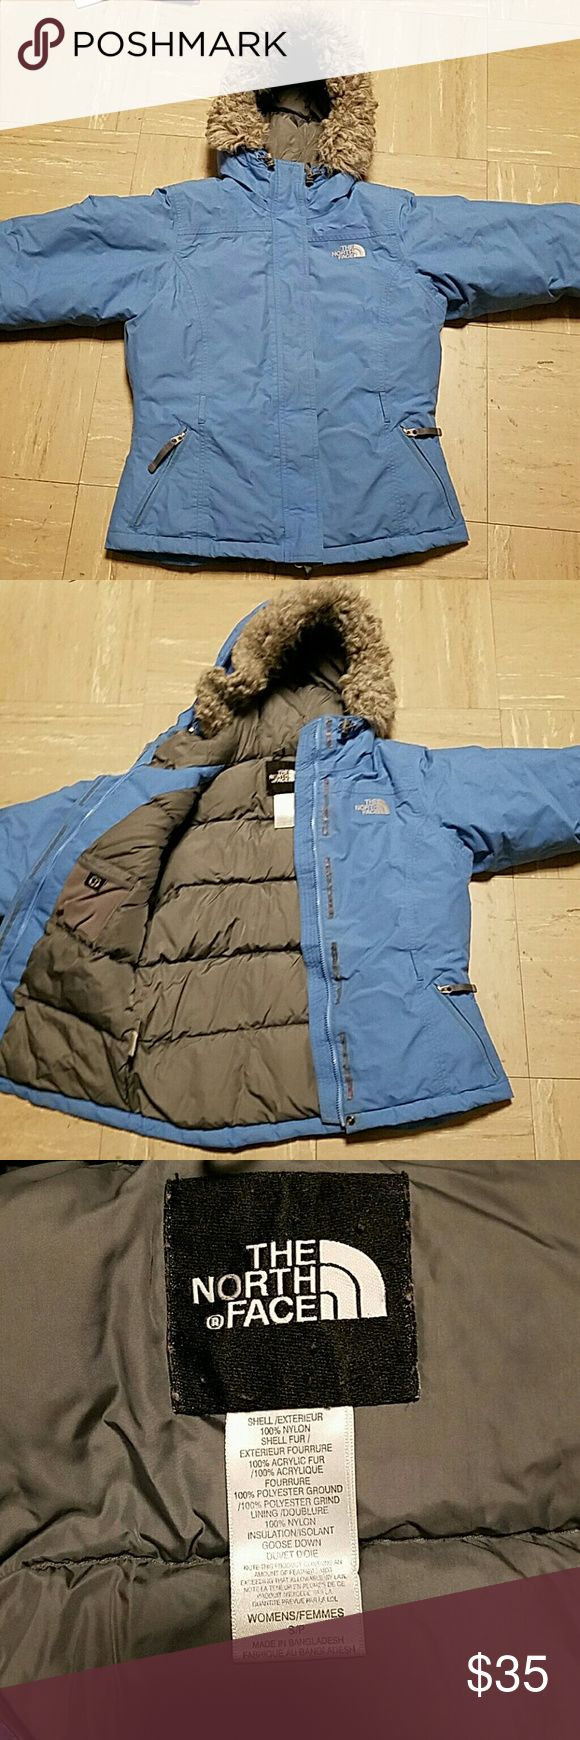 North Face Down Winter Coat Super thick goose down coat from north face. Has removable faux fur around the hood. Scuff on one shoulder seen in last photo The North Face Jackets & Coats